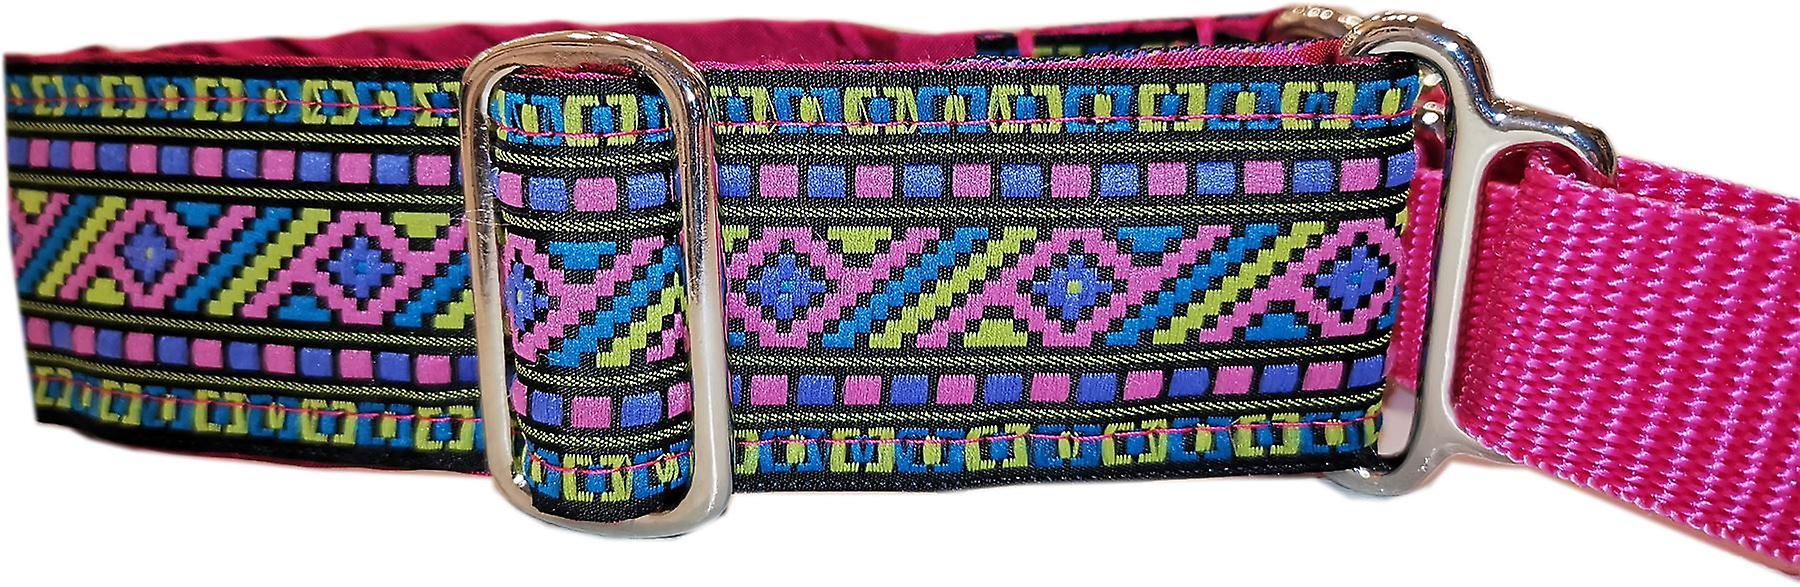 Dogcrafts Martingale Aztech Pink Multi Nickel Plated Drop